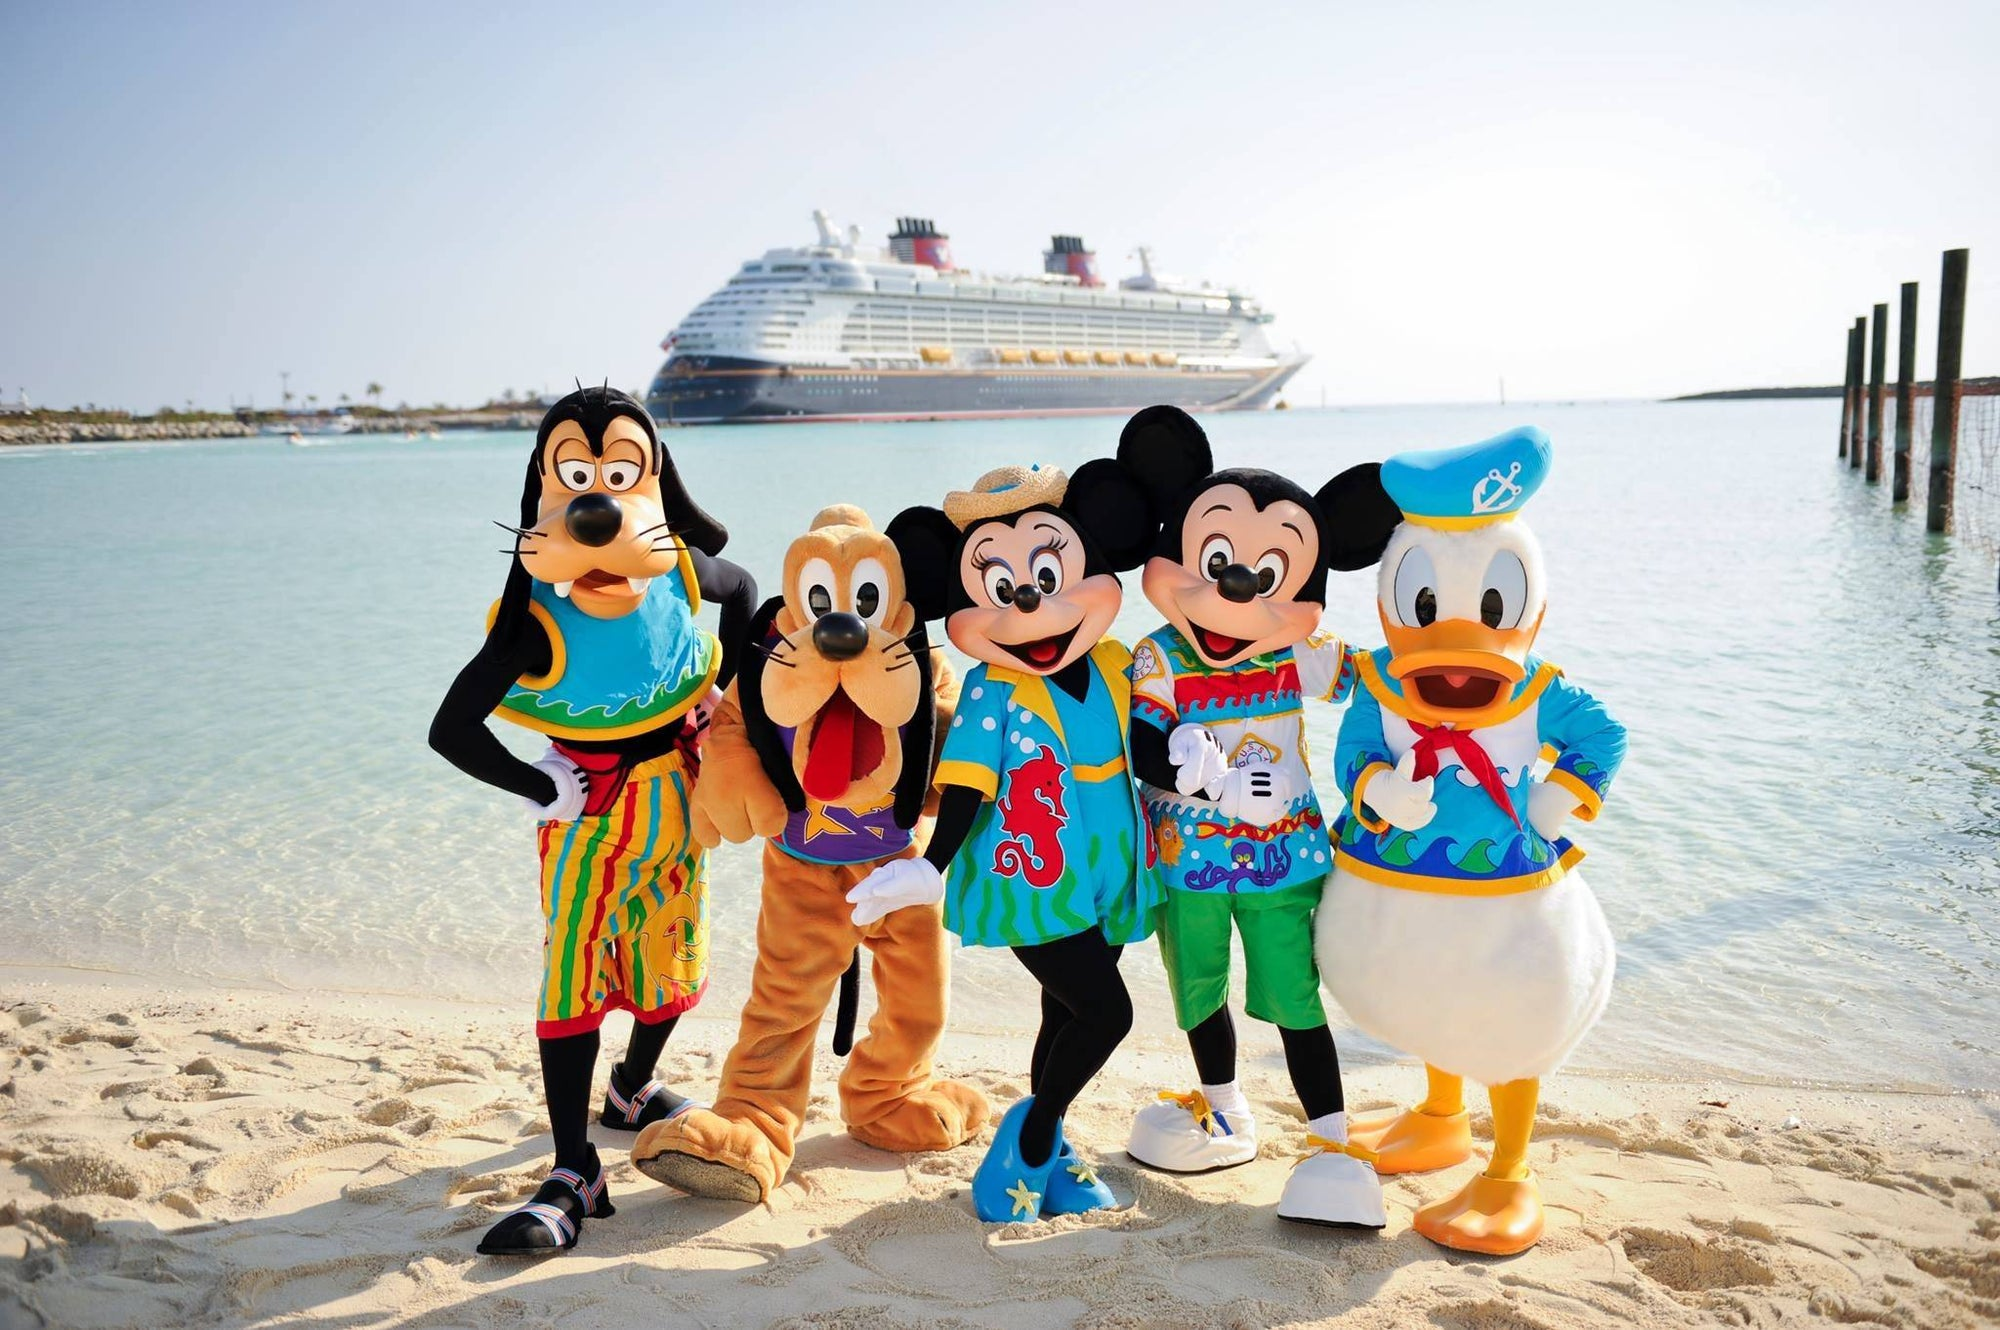 The Complete Guide to Character Encounters on the Disney Cruise Line